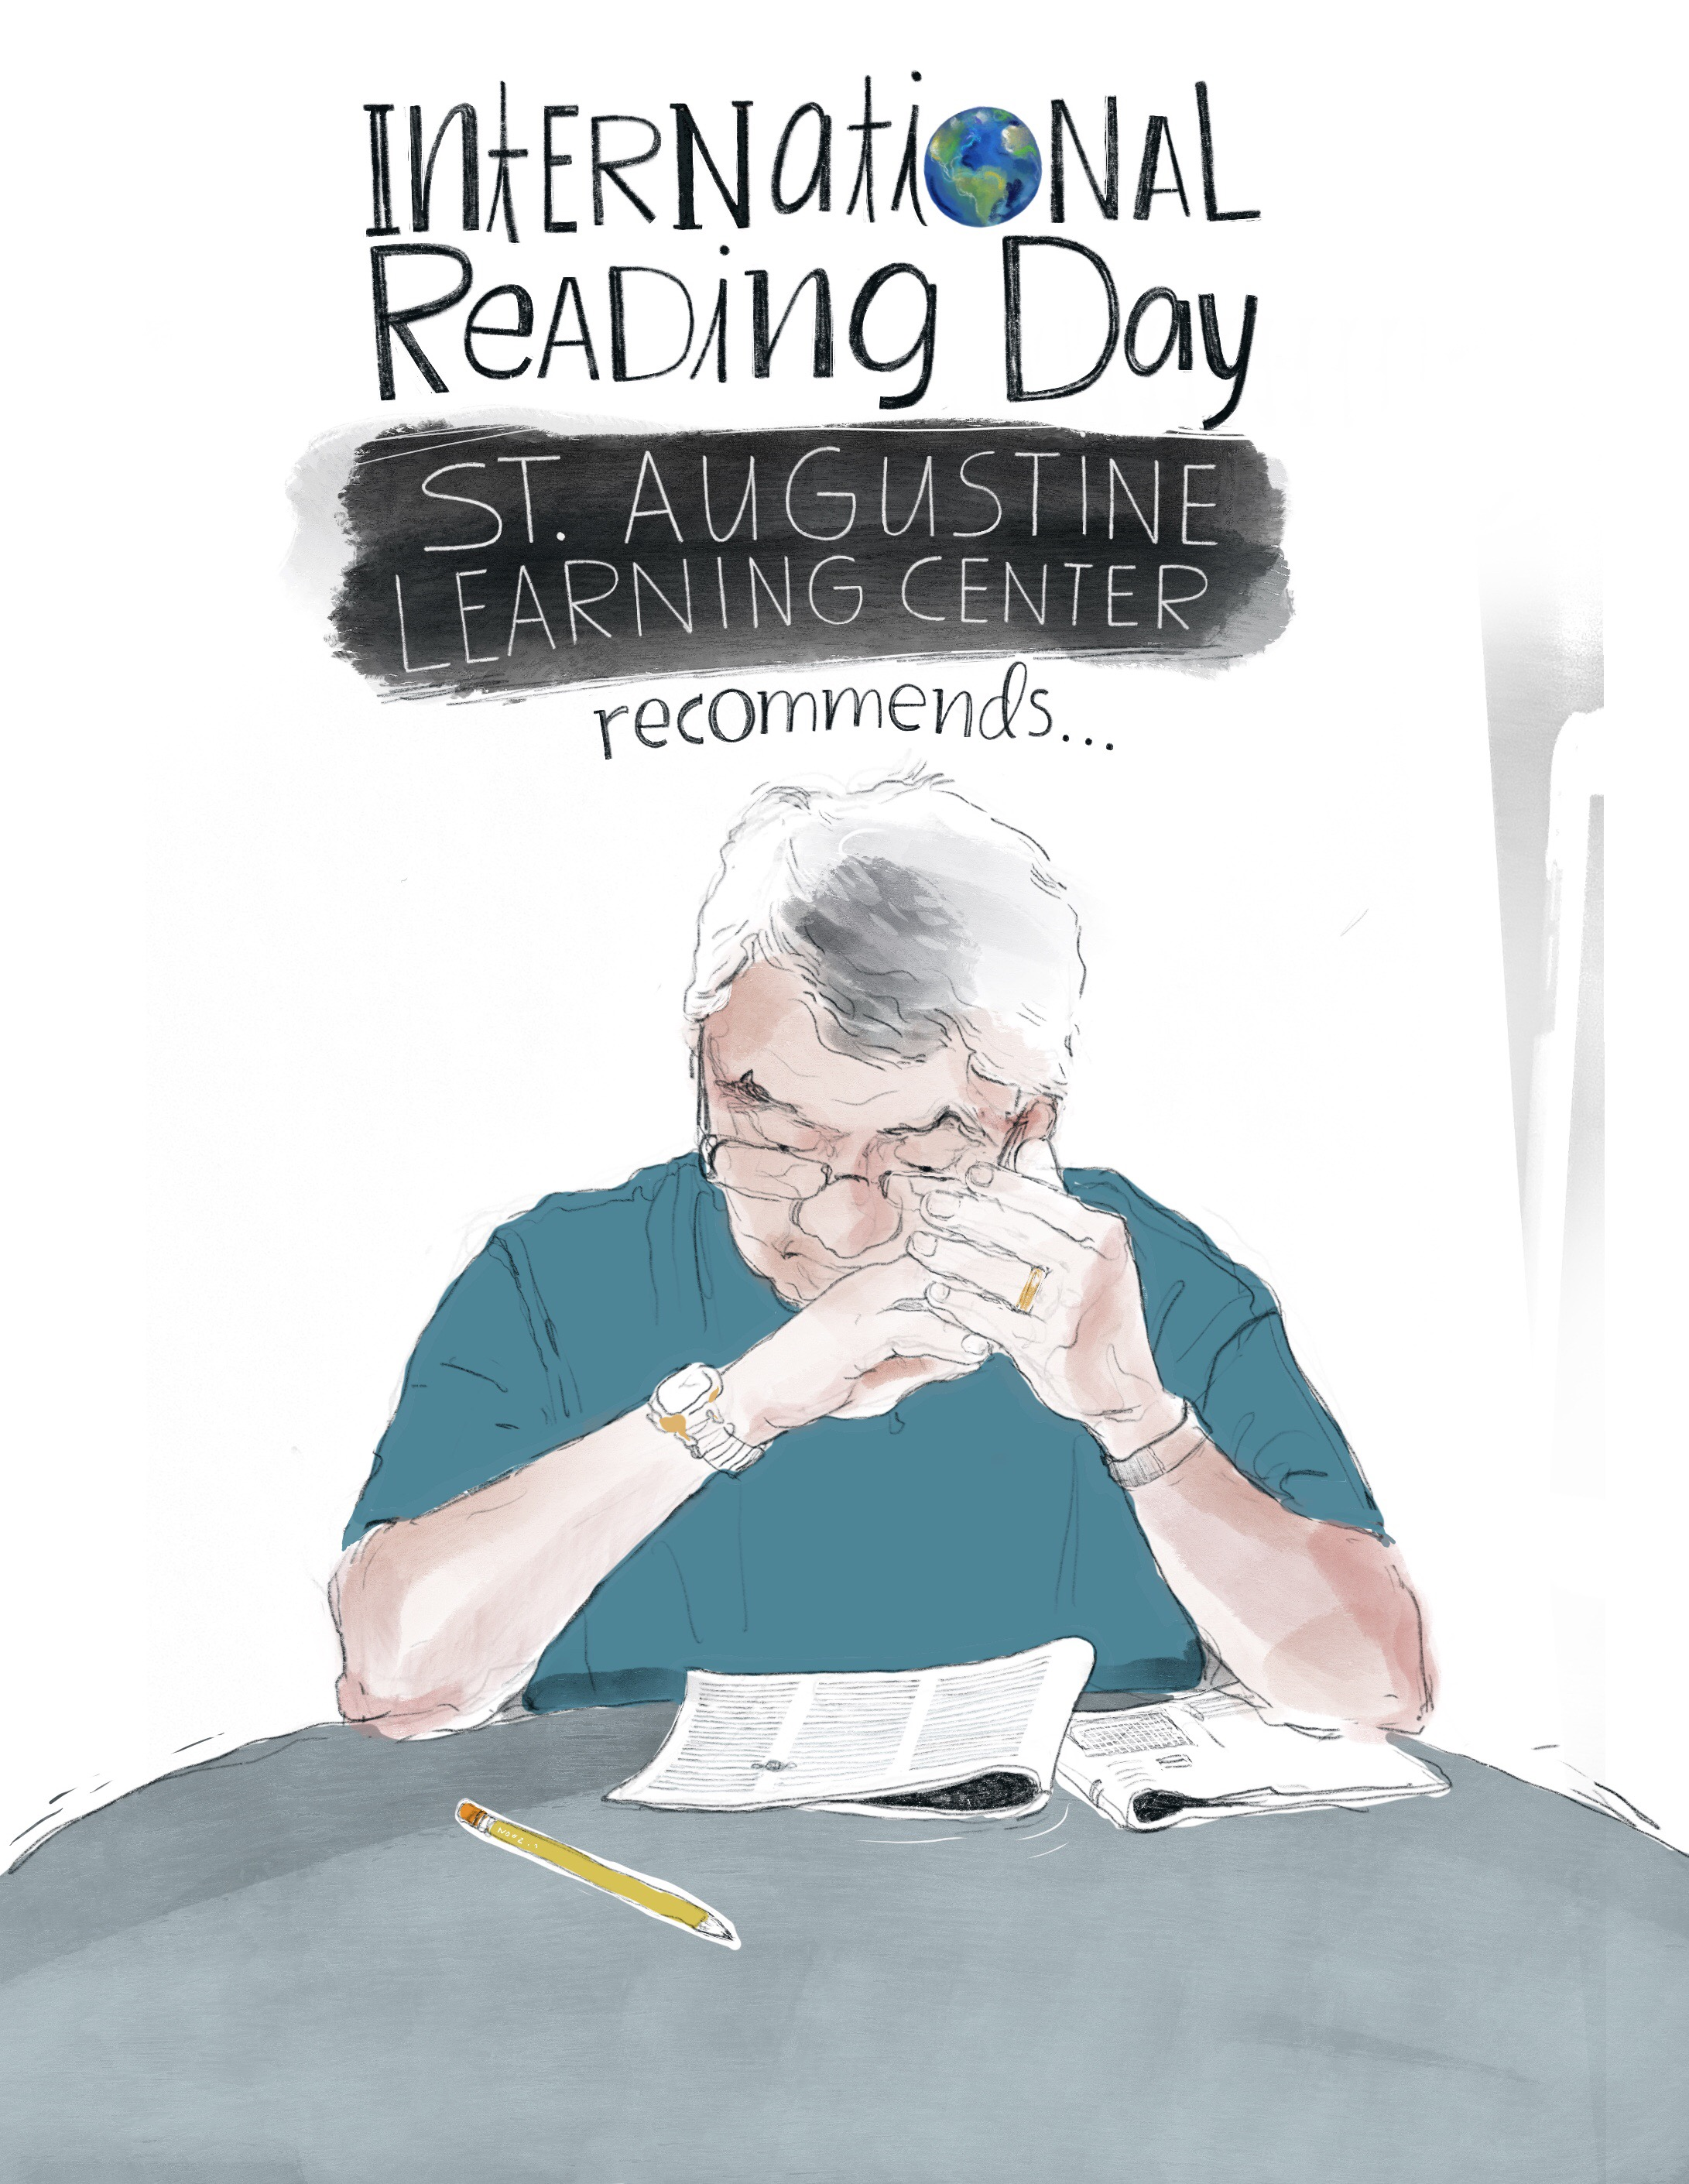 International Reading Day.jpg